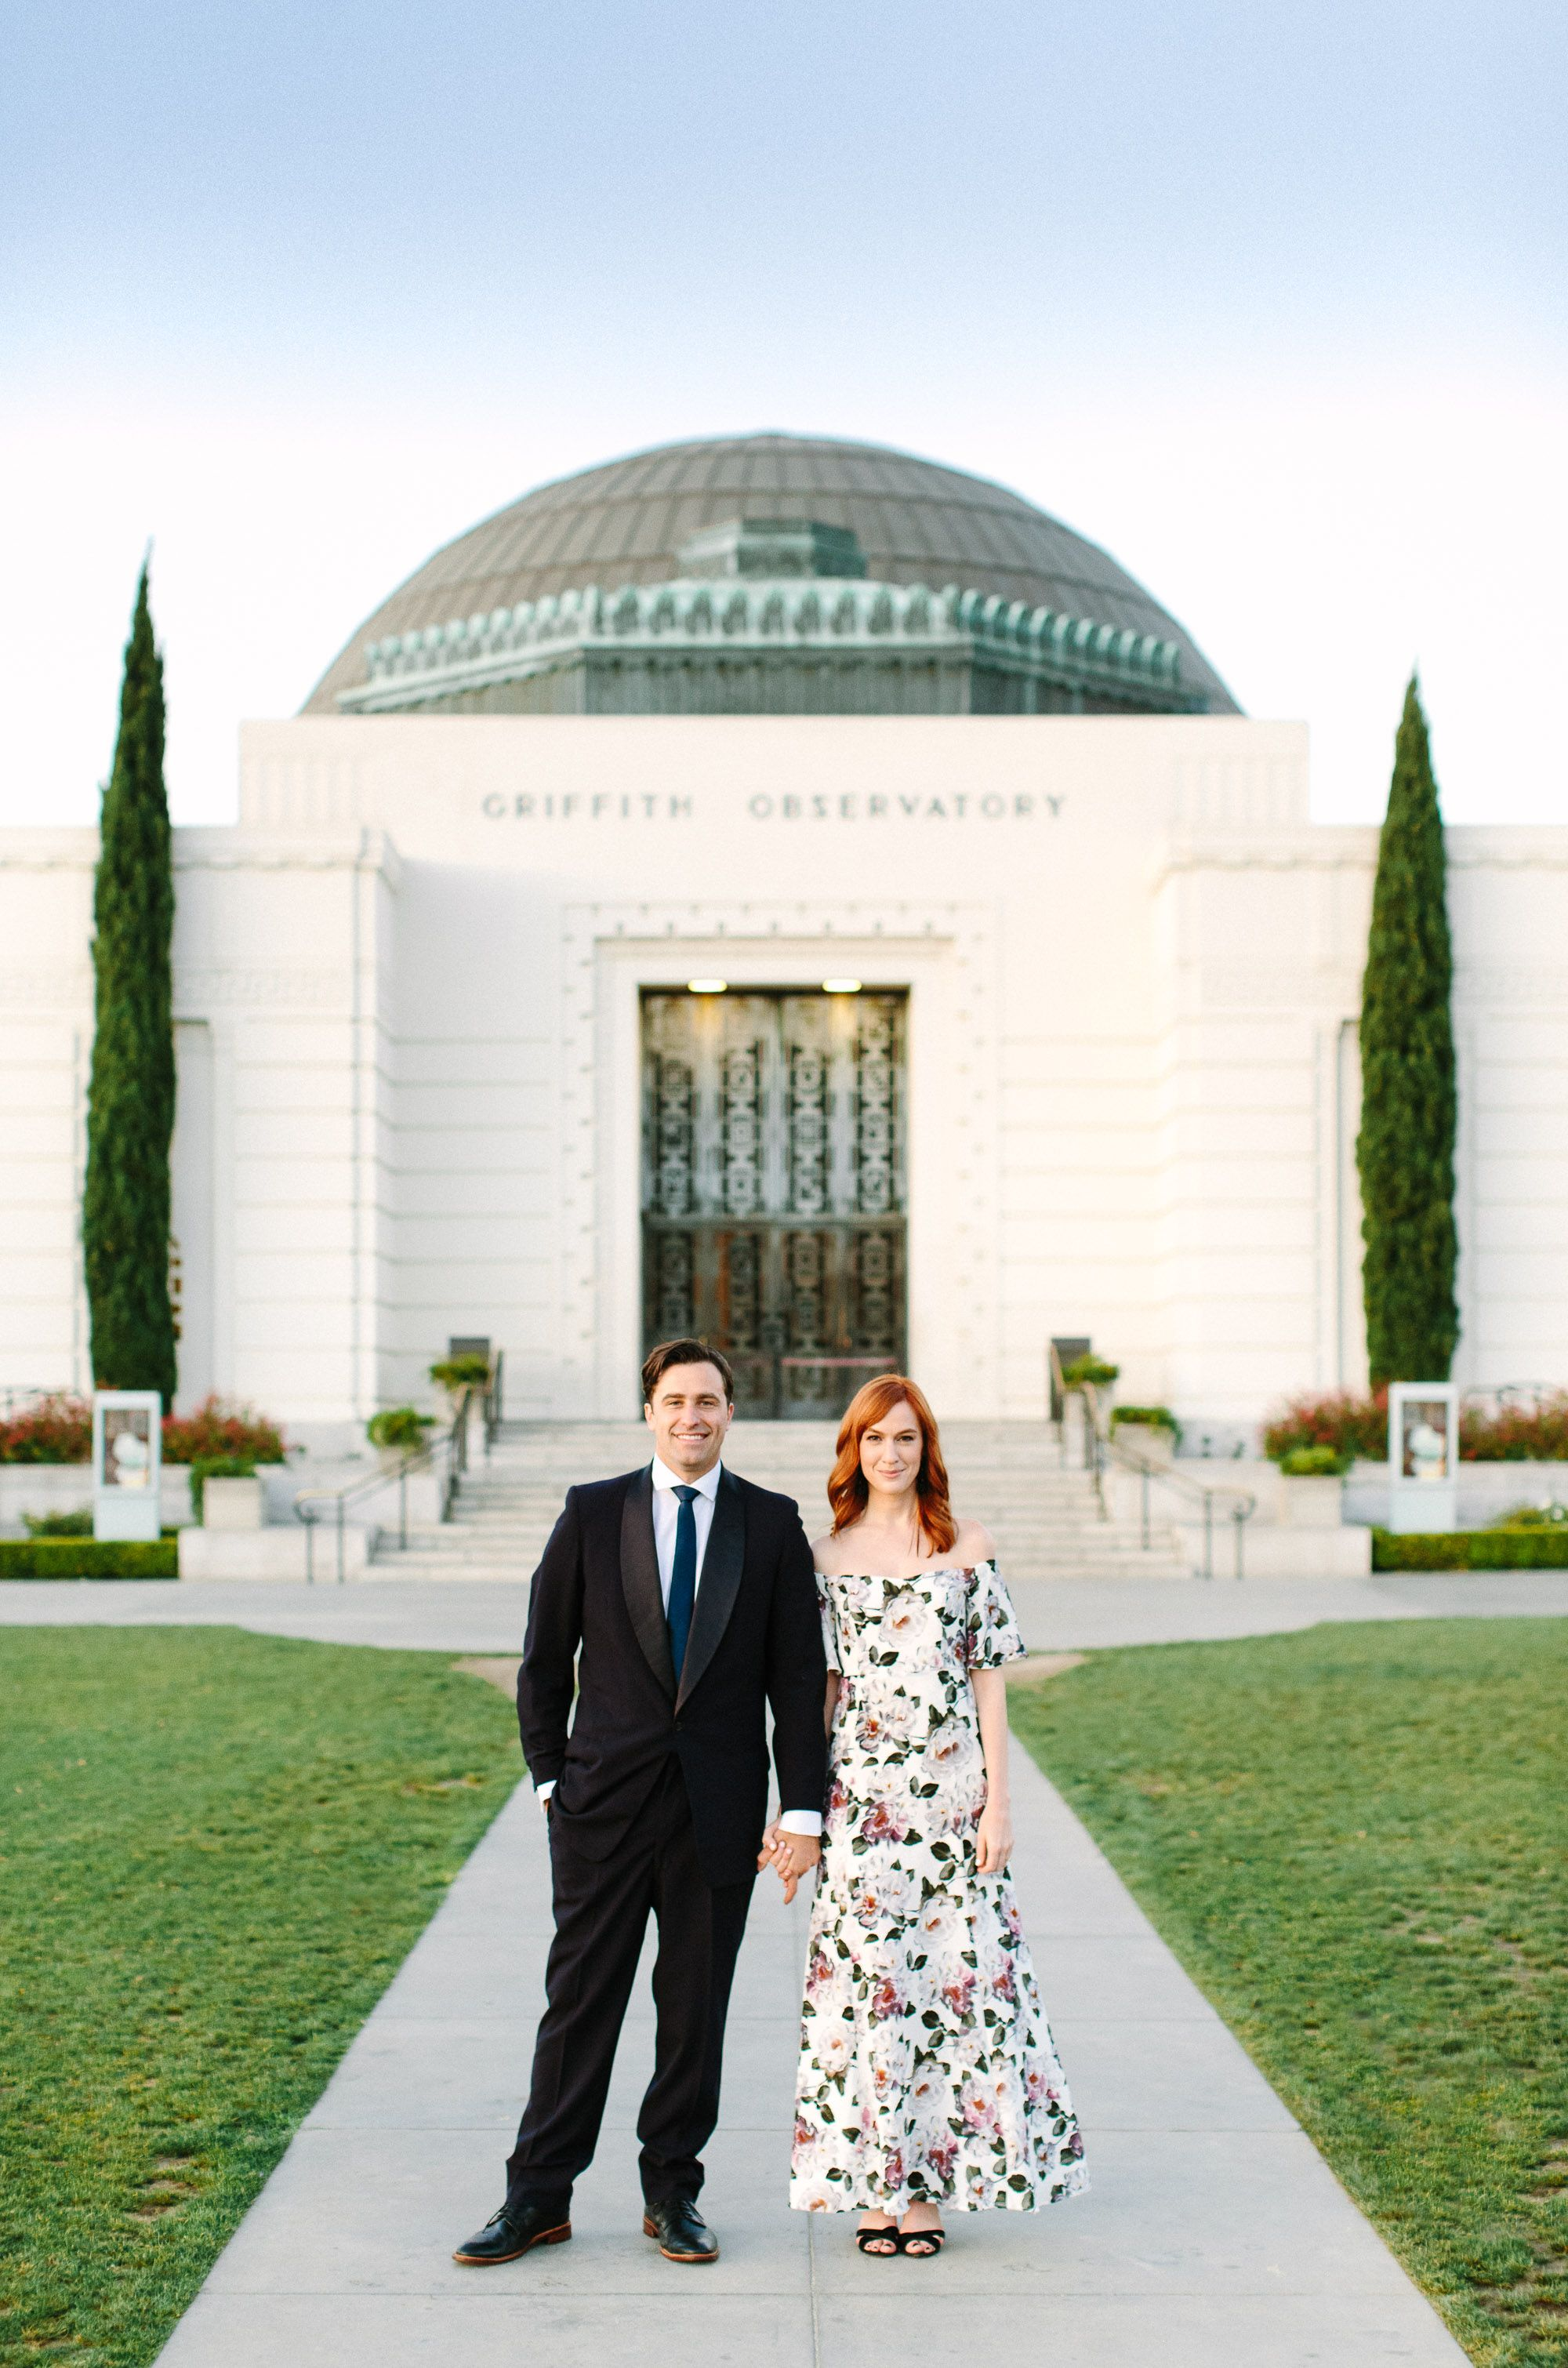 Griffith Observatory Engagement Session At Sunrise Los Angeles Engagement Photos Griffith Observatory Wedding Griffith Observatory